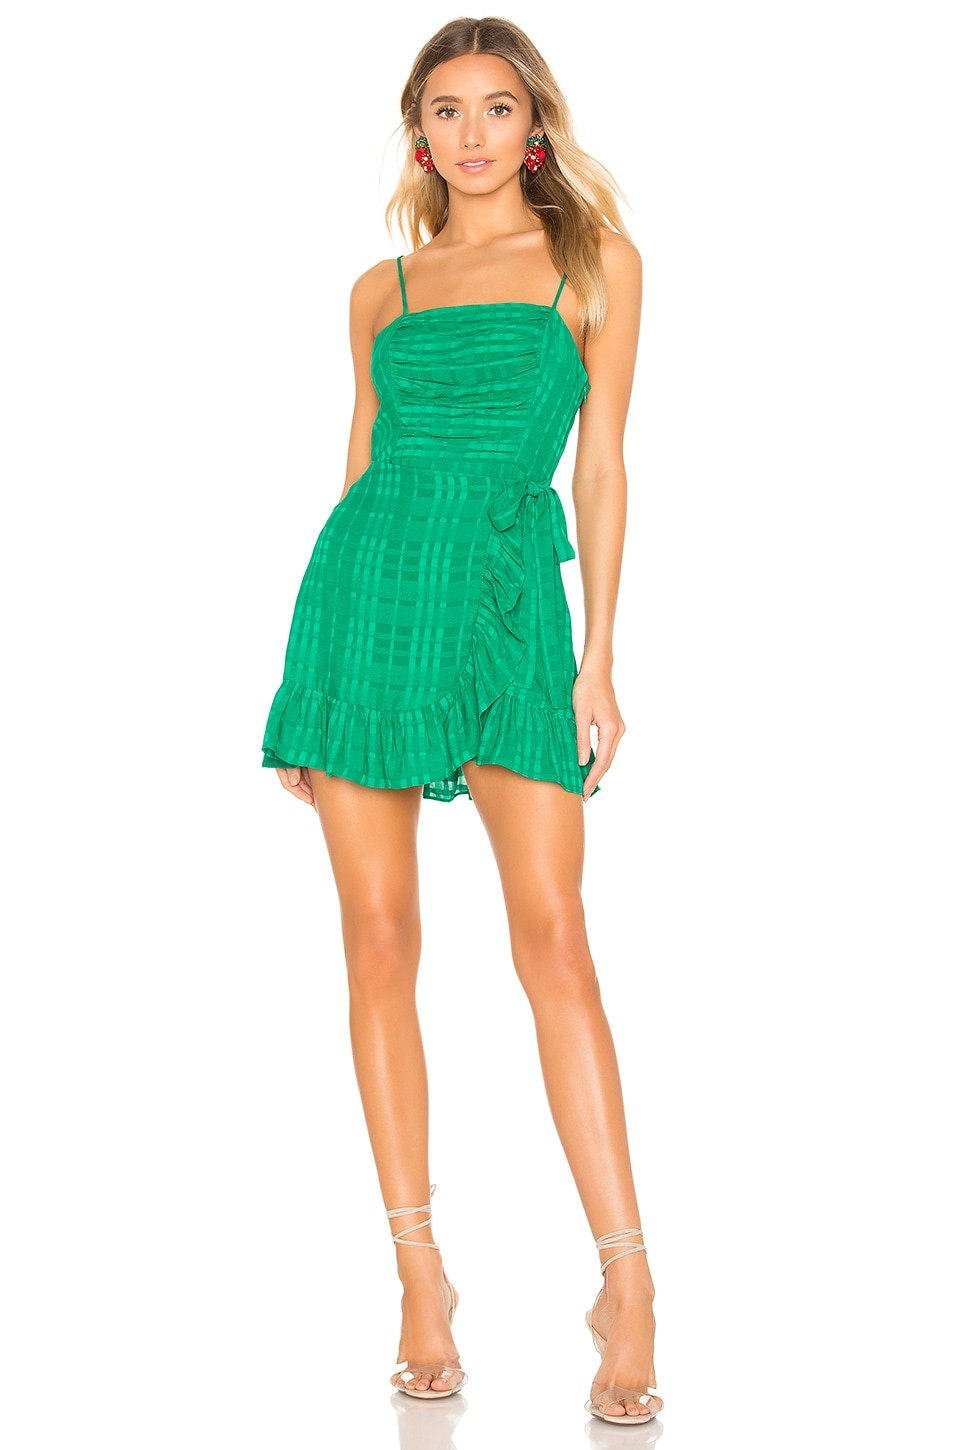 Privacy Please Henley Mini Dress in Green